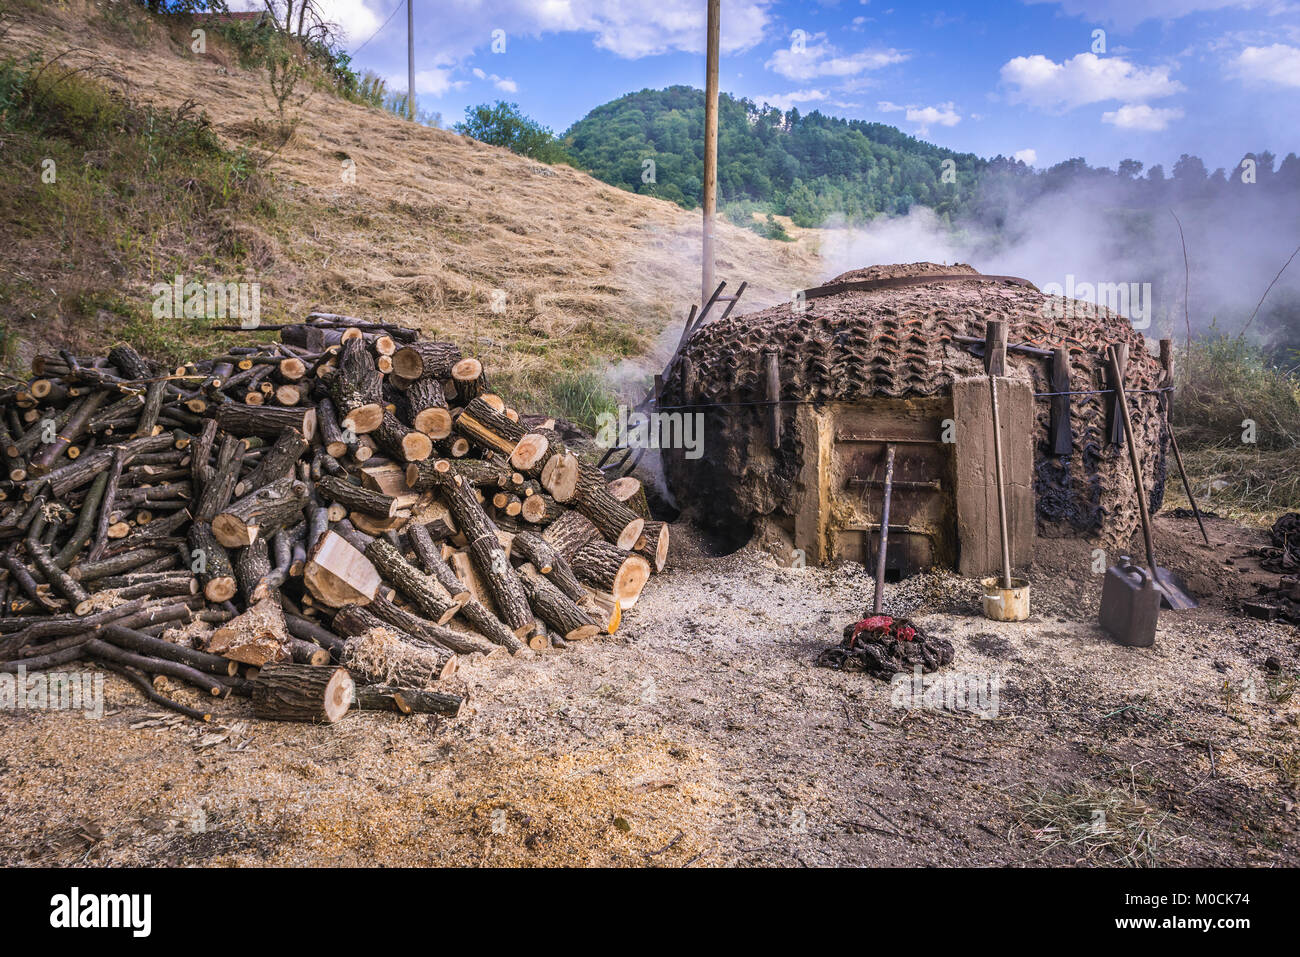 Traditional method of charcoal production method in Lucani municipality, Moravica District of Serbia - Stock Image